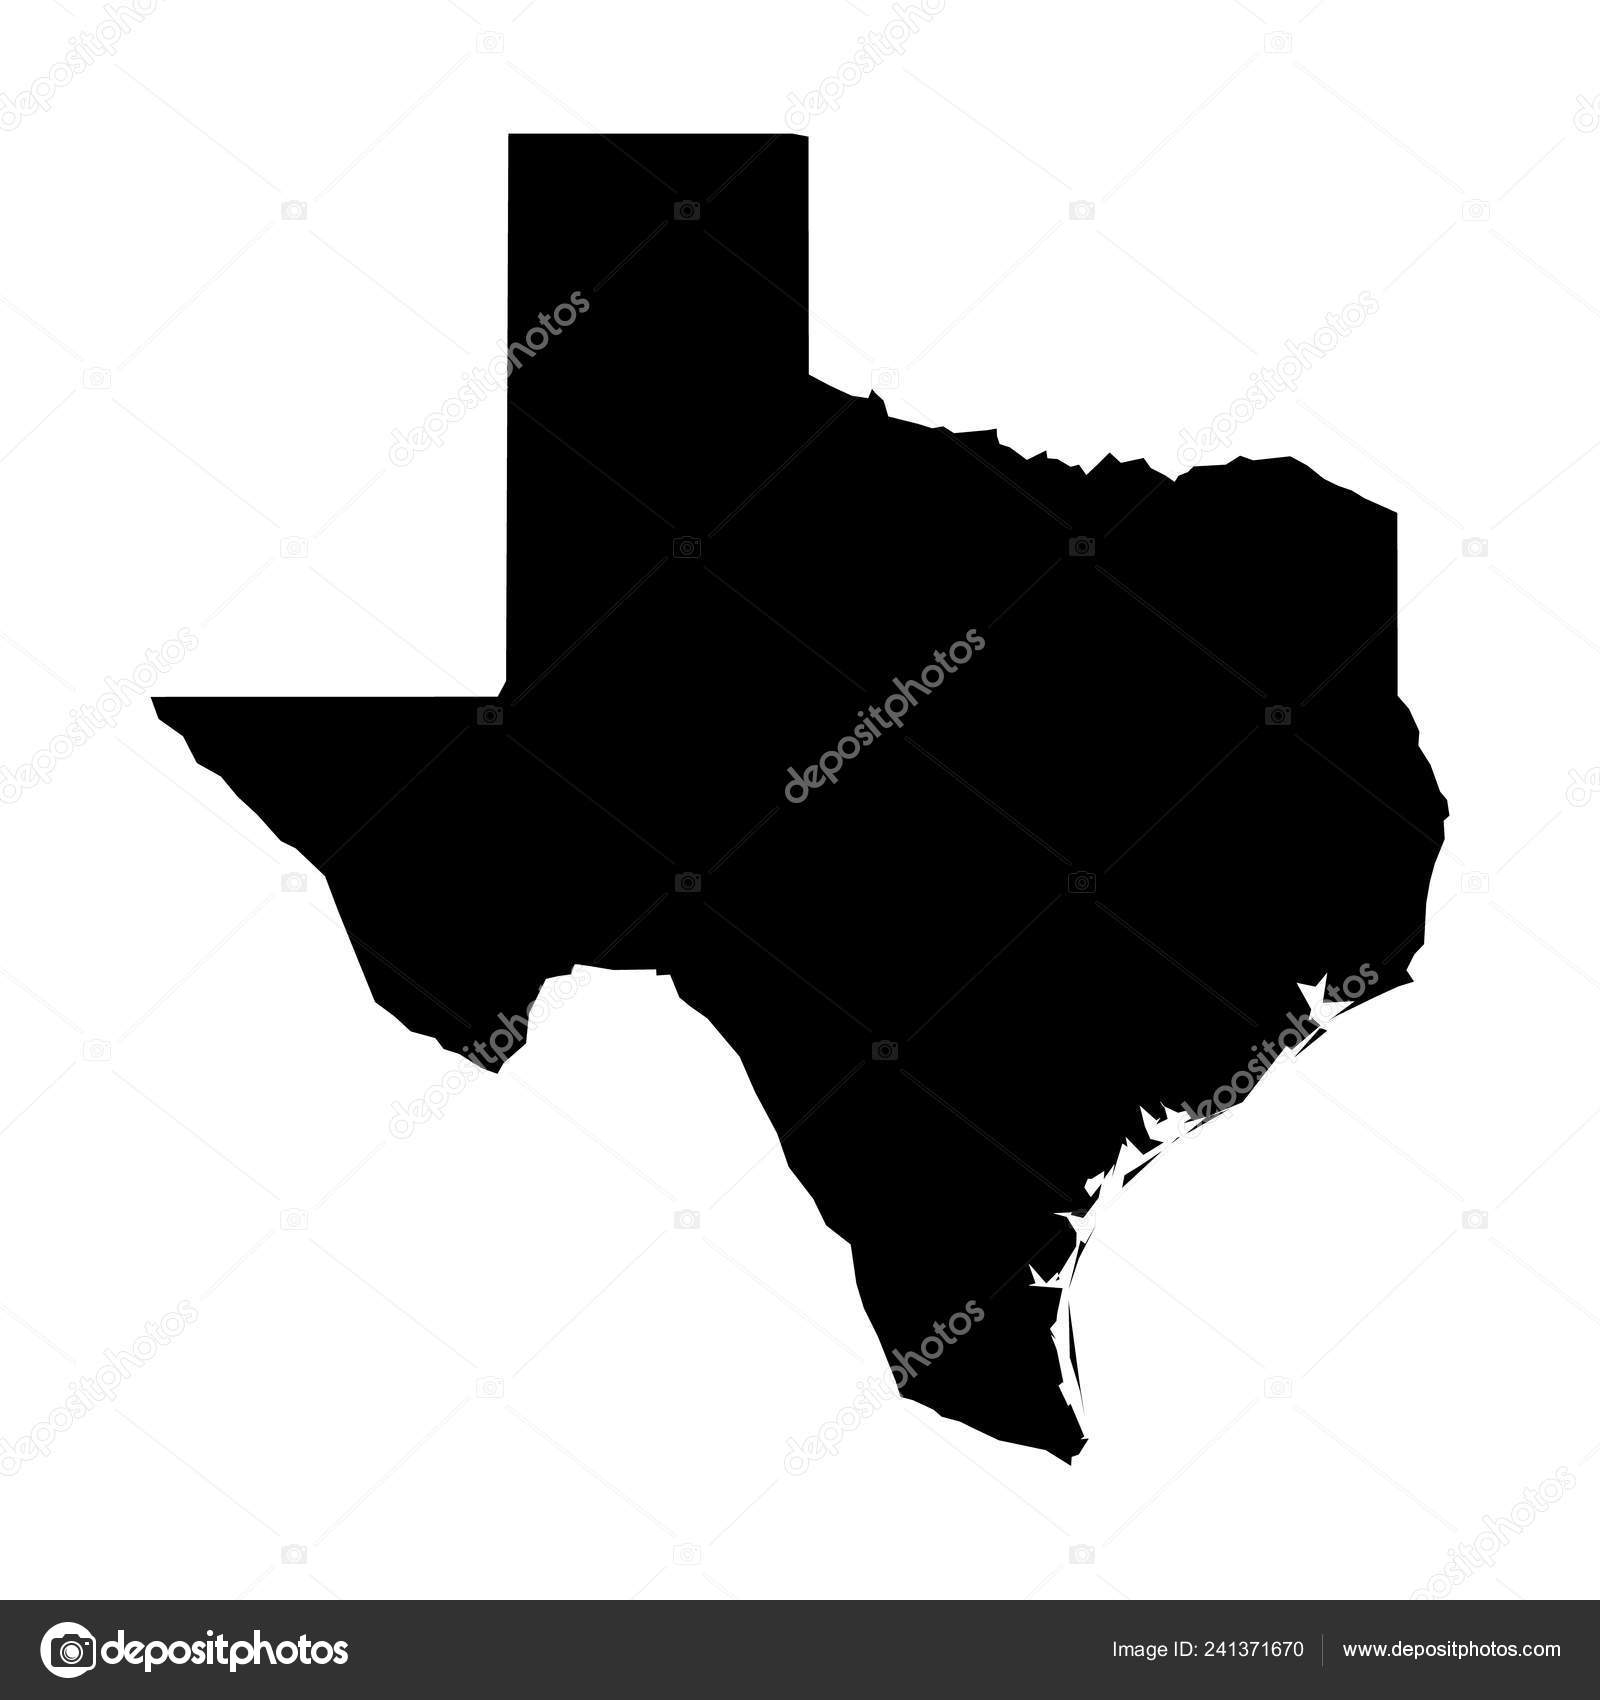 Texas, state of USA - solid black silhouette map of country ... on location of rosenberg texas, major aquifers of texas, google austin texas, american bank of texas, the annexation of texas, geographic center of texas, dallas texas, relative location of texas, geographical id texas, city of rosenberg texas, temperature austin texas, missions of texas, city of manor texas, austin city limits map texas, lakes of texas, 3d physical map texas, printable maps north texas, is there desert in texas, black and white state of texas, stuff about texas,